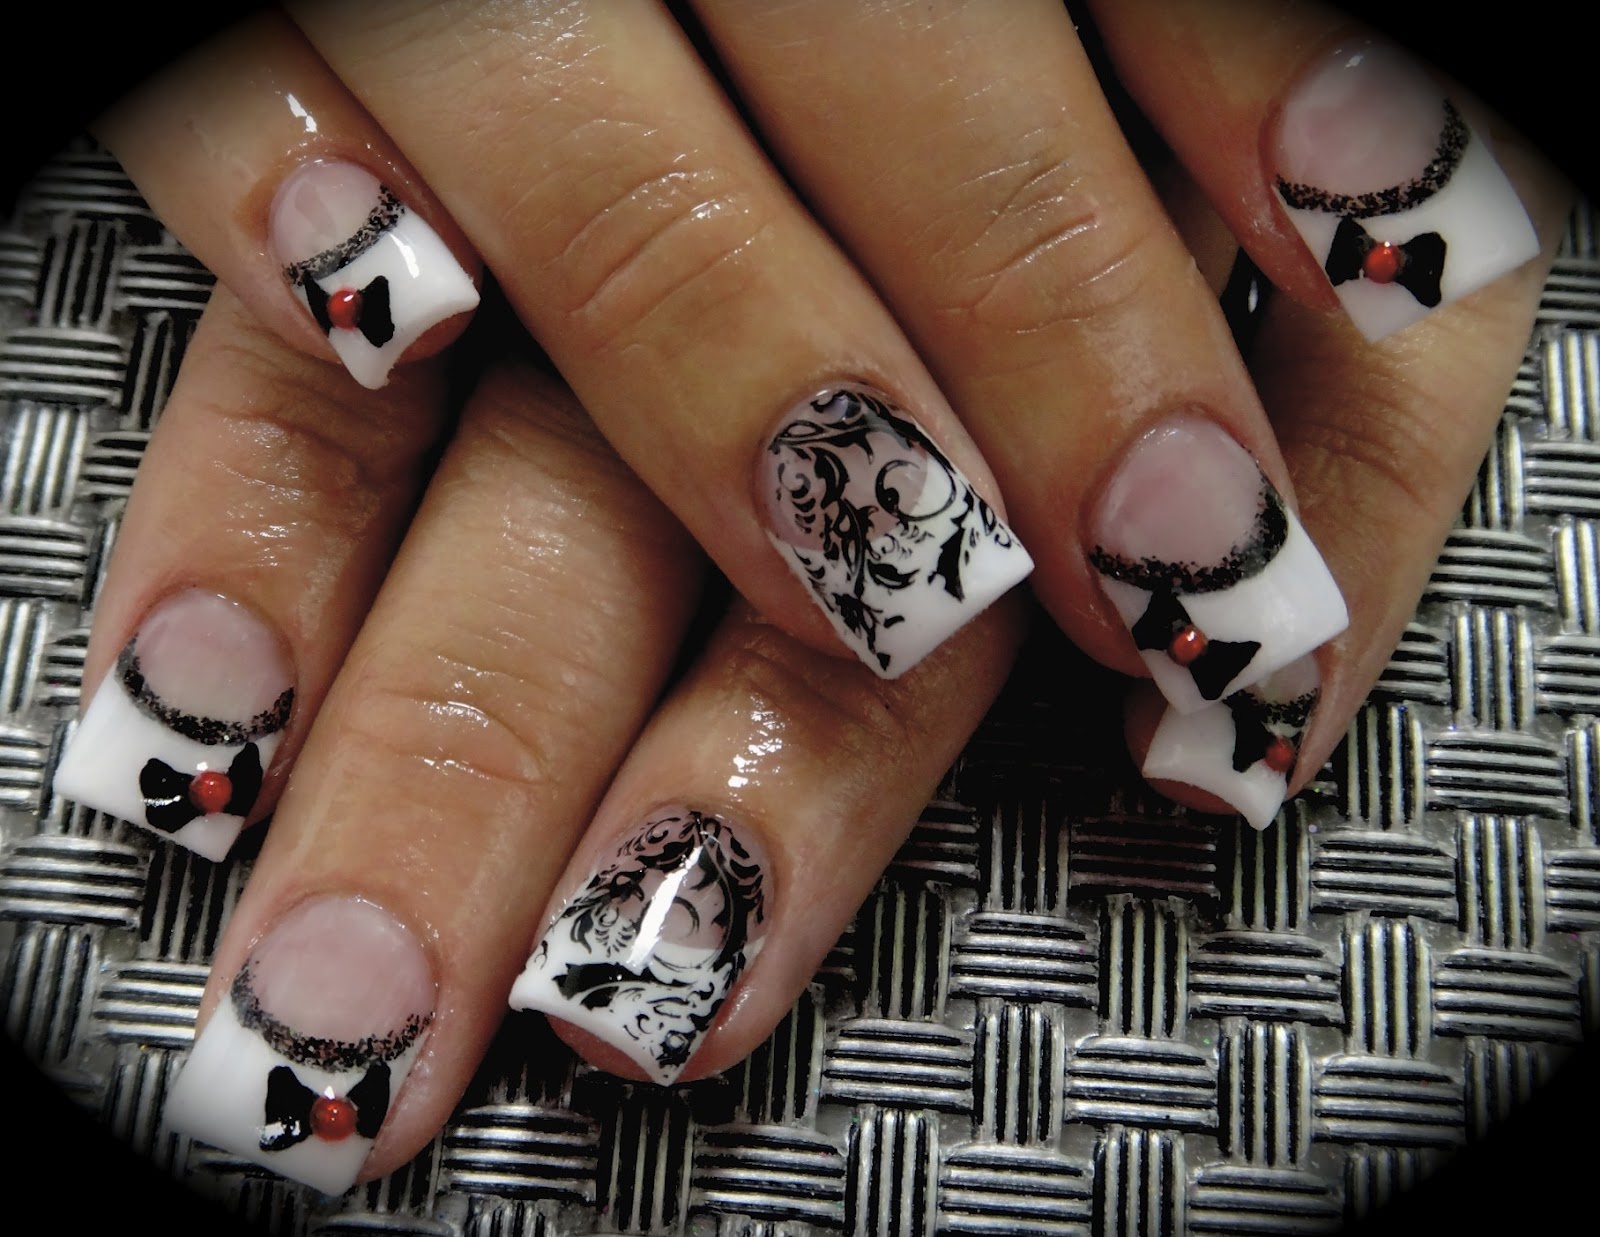 Browning Nail Design Stamp acrylic nail art with 3d